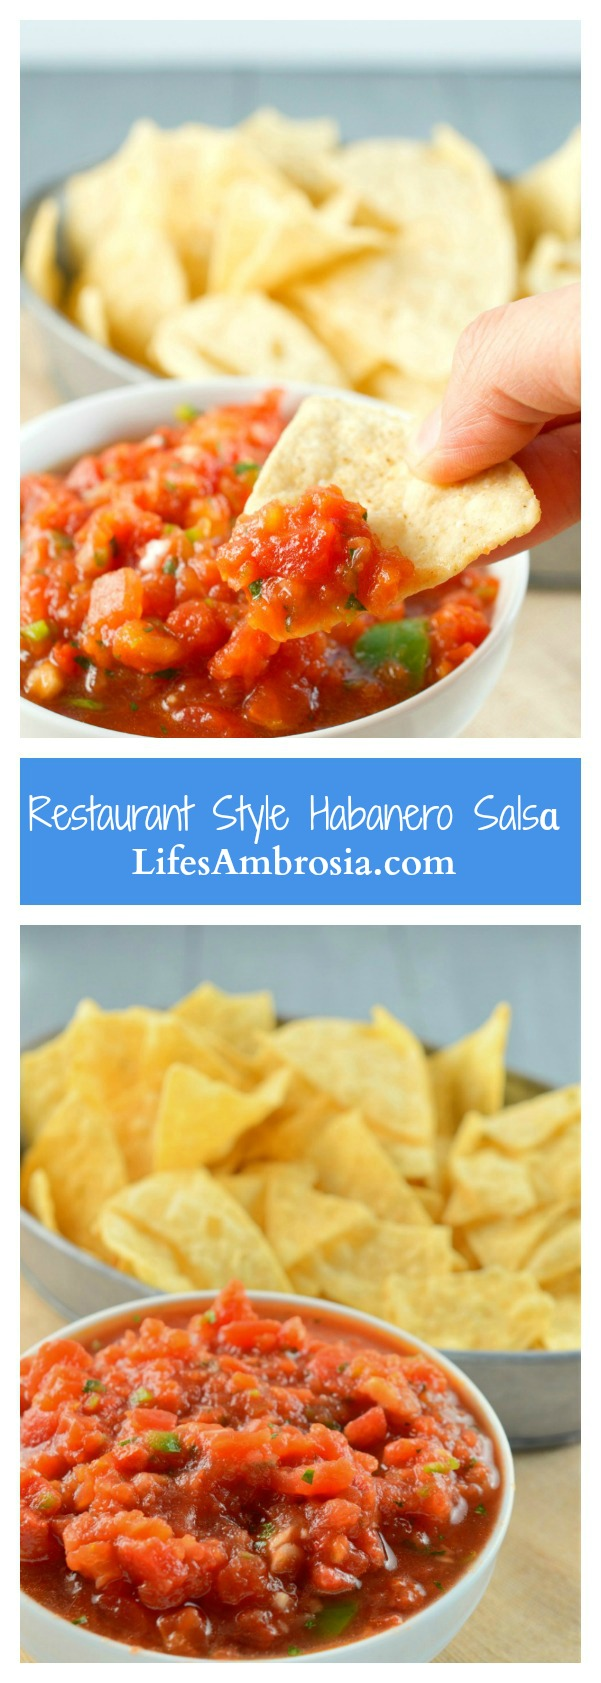 A quick, easy and spicy restaurant style habanero salsa.